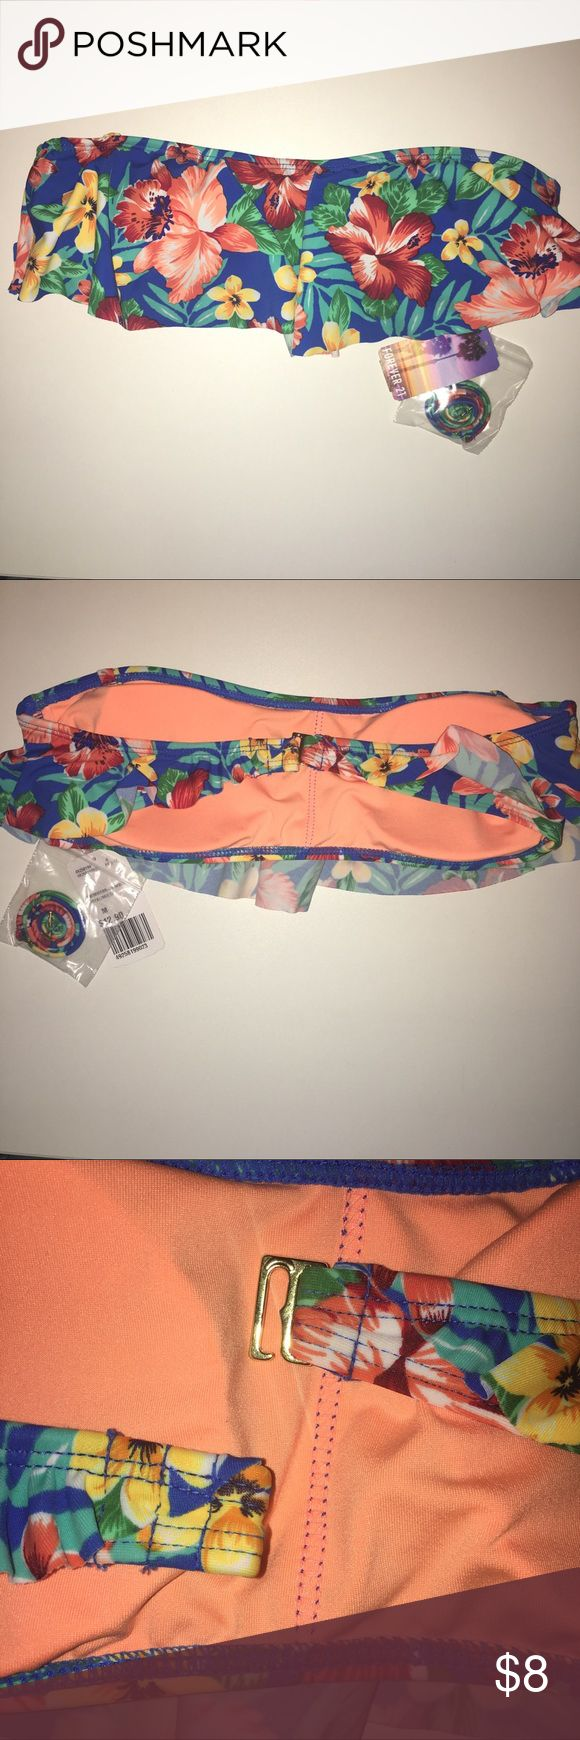 Price drop!! NWT floral bikini top NWT Hawaiian floral bandeau bikini top from Forever 21. Includes strap and removable padding. Hook closure. Royal with floral design. Size M.  ✨✨✨  Never worn. Bright colors would pair well with any solid color bikini bottom!   Firm price. Forever 21 Swim Bikinis